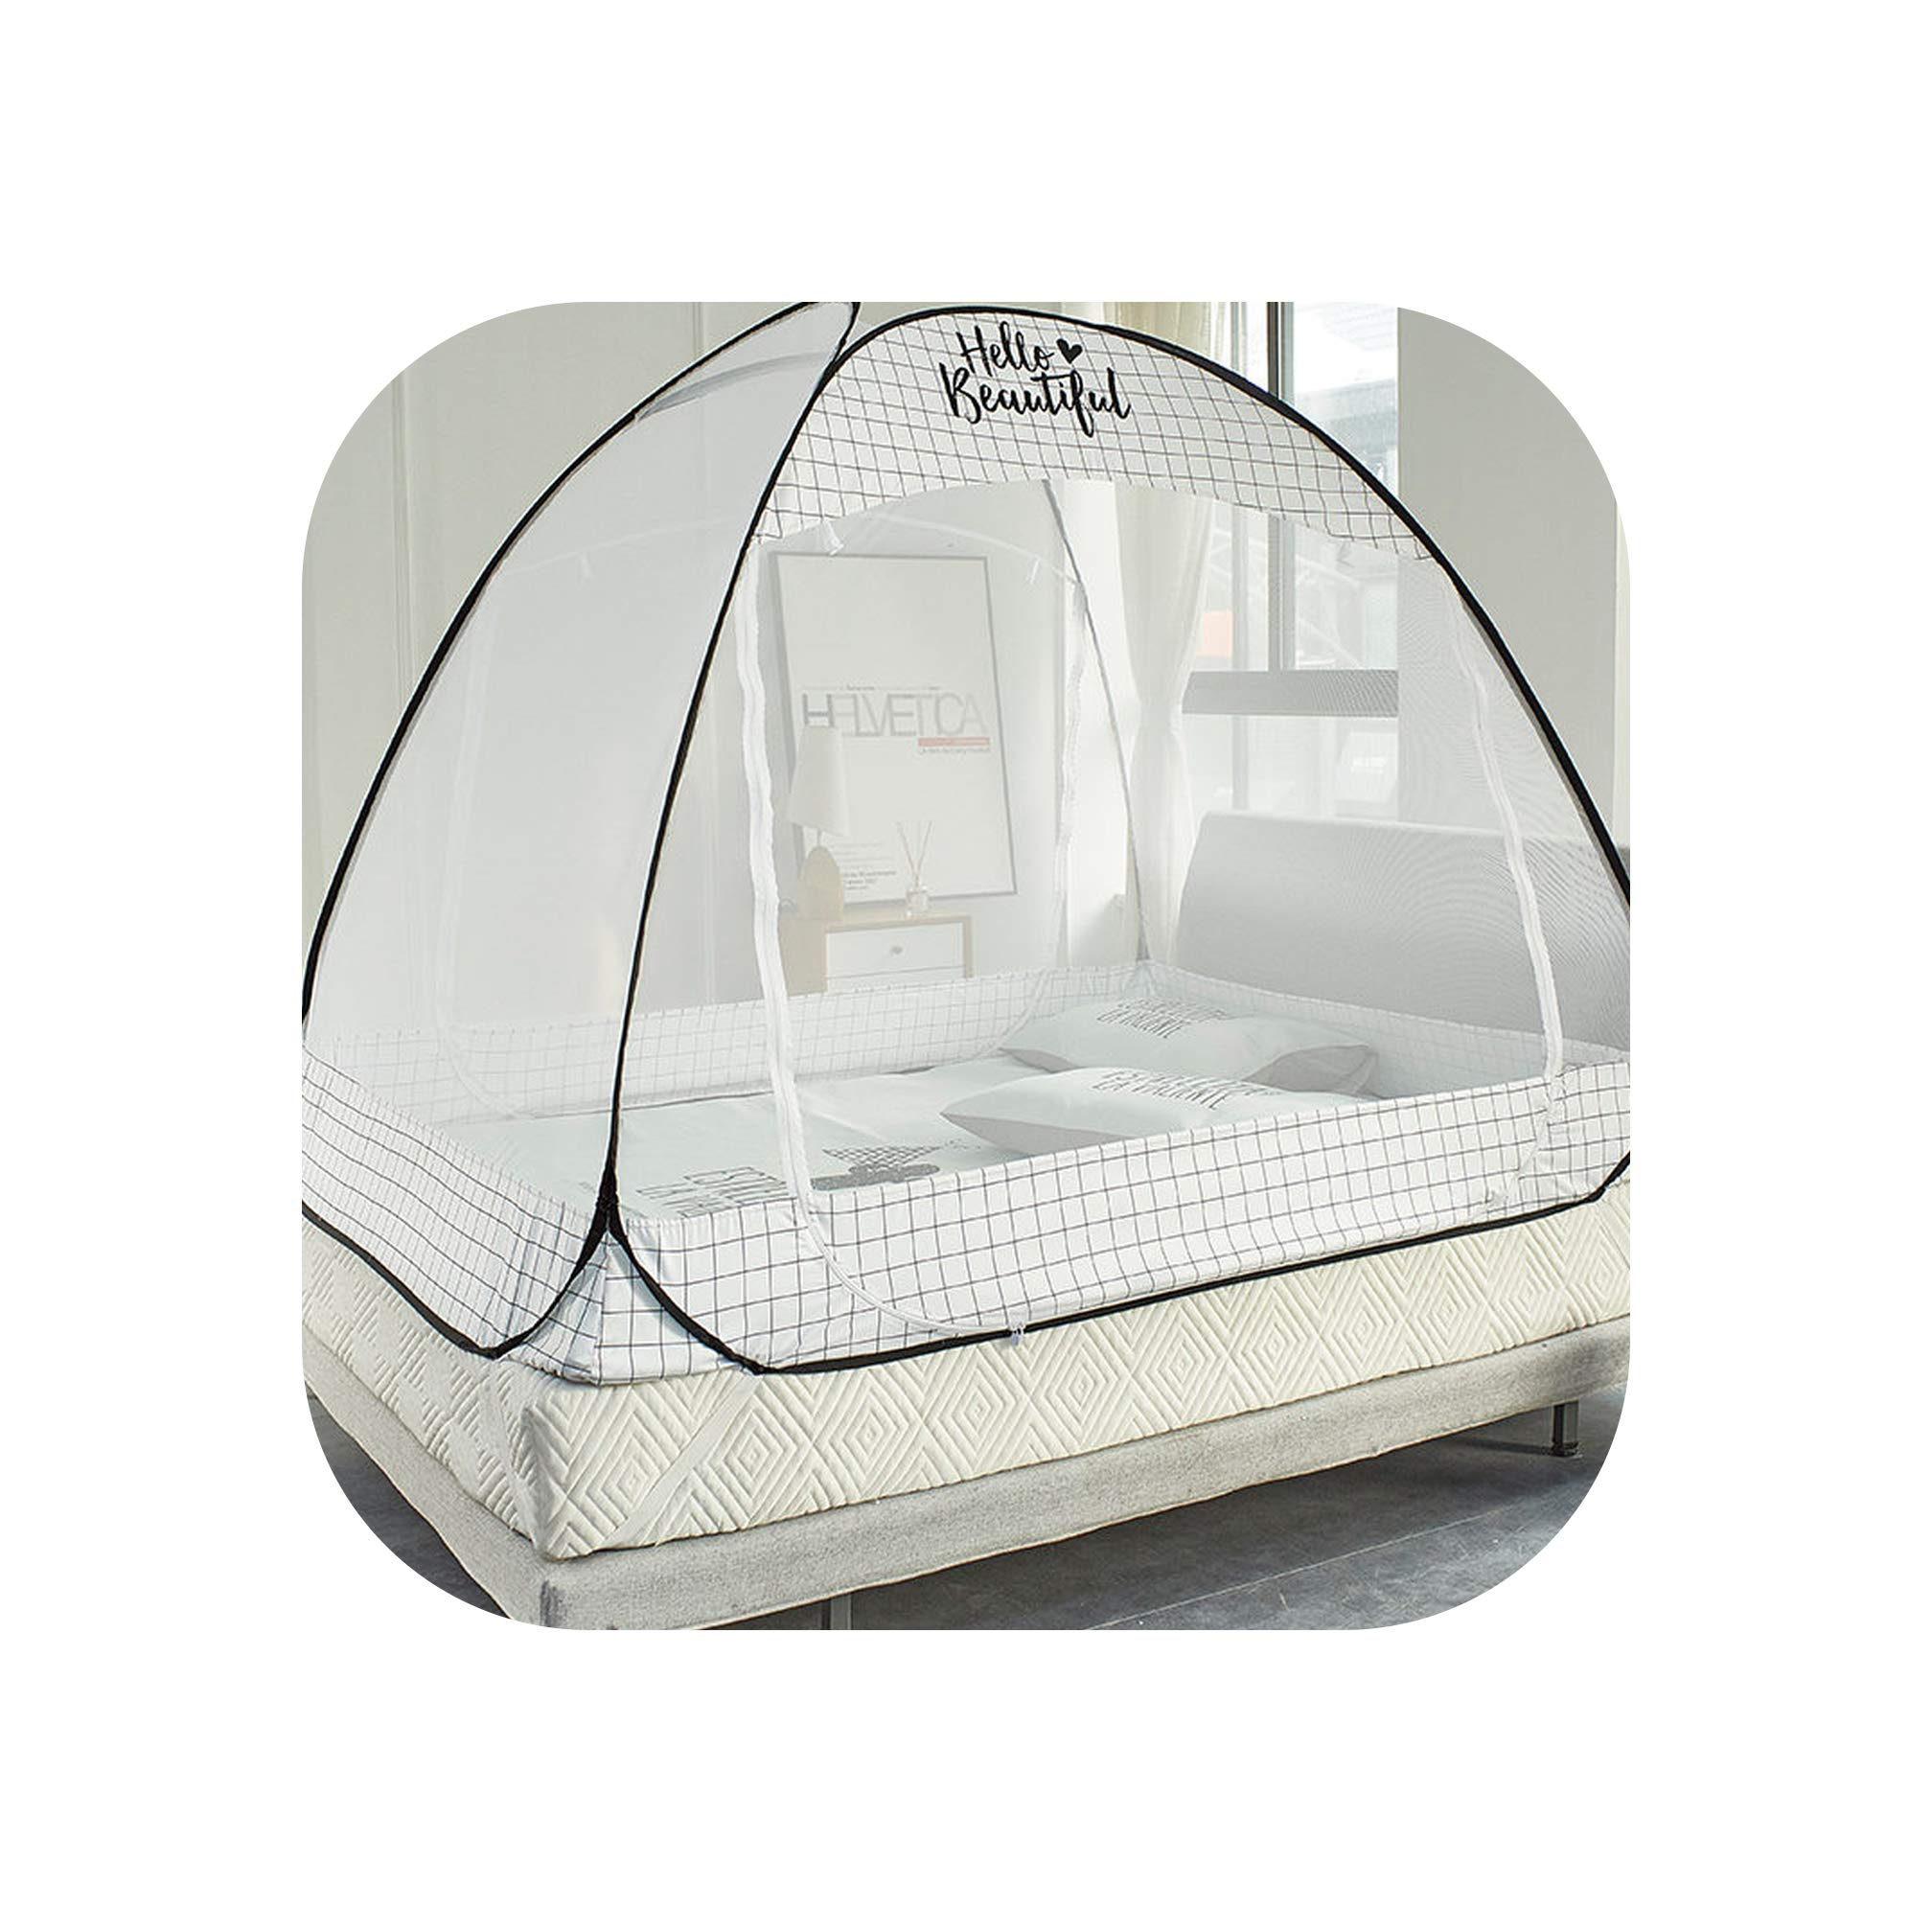 Cute Printing Parting Mosquito Net Summer Isolate Mosquito Mesh Canopy Folding Mosquito Net Kids Bed Tent,Grid,1.8m (6 feet) Bed